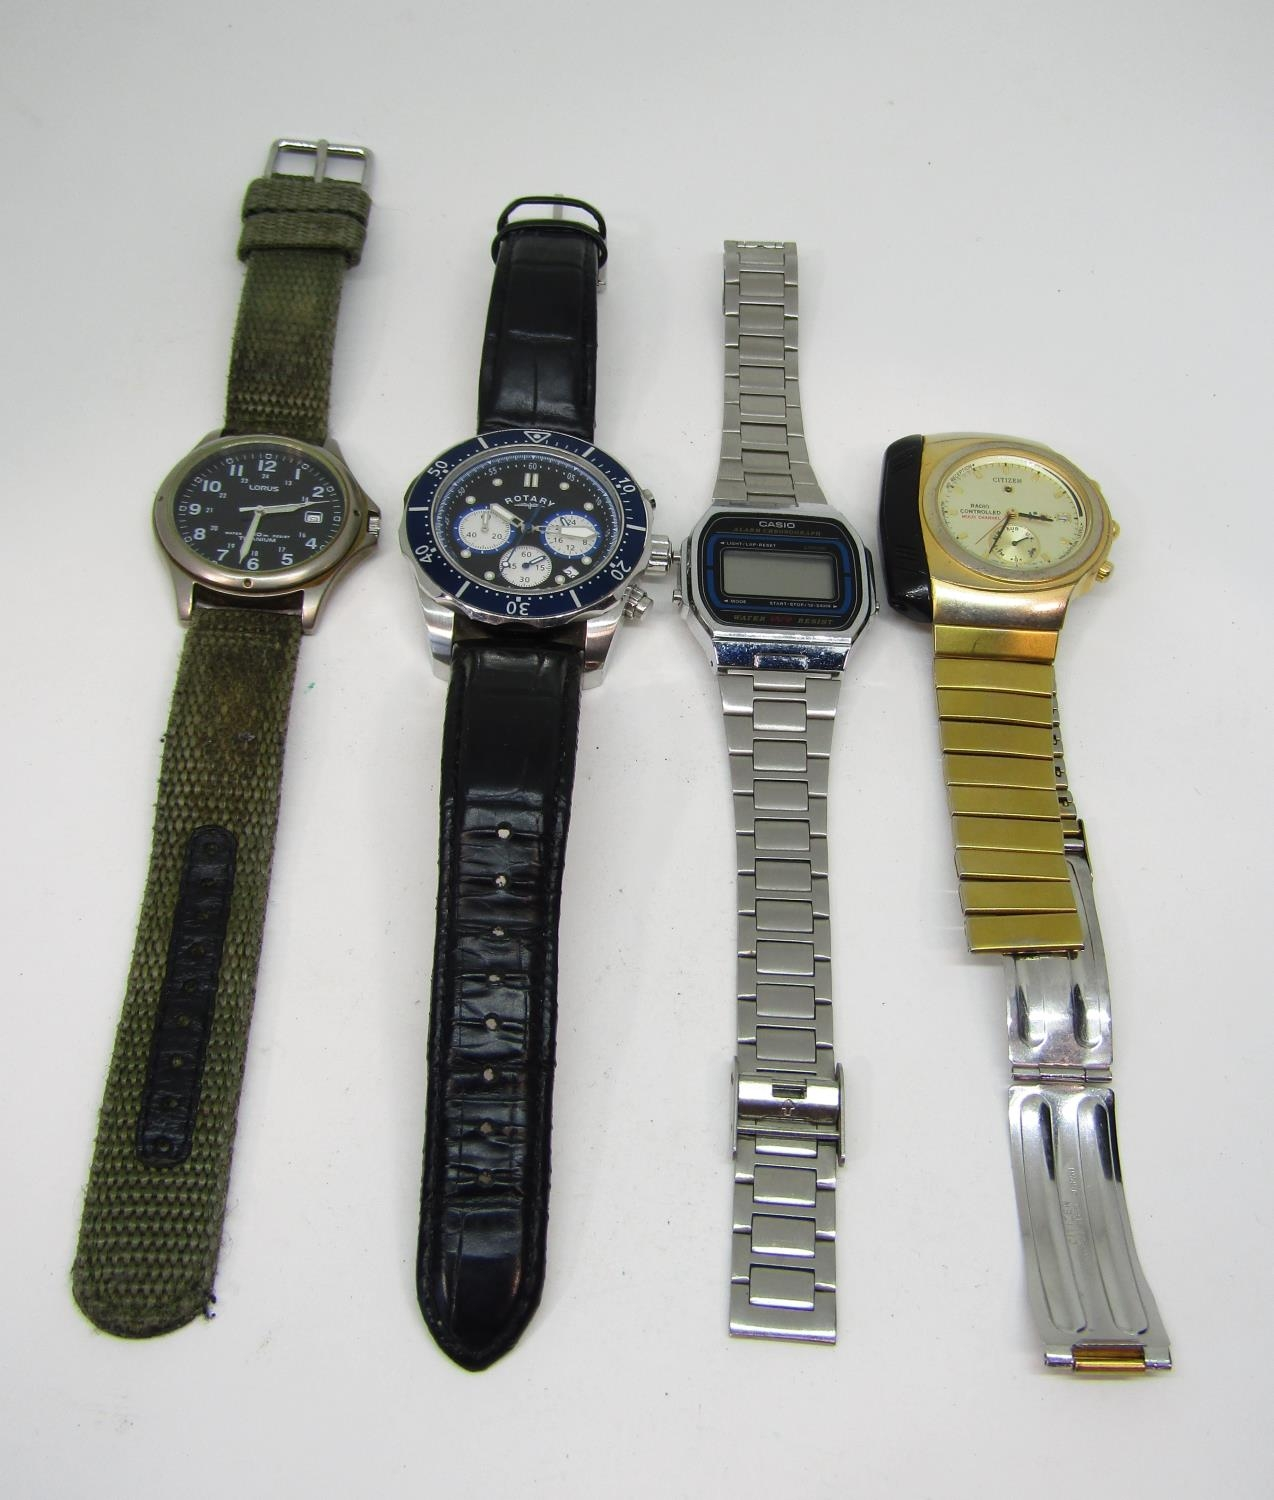 Four good vintage gents wristwatches to include a Rotary quartz divers watch with black dial and